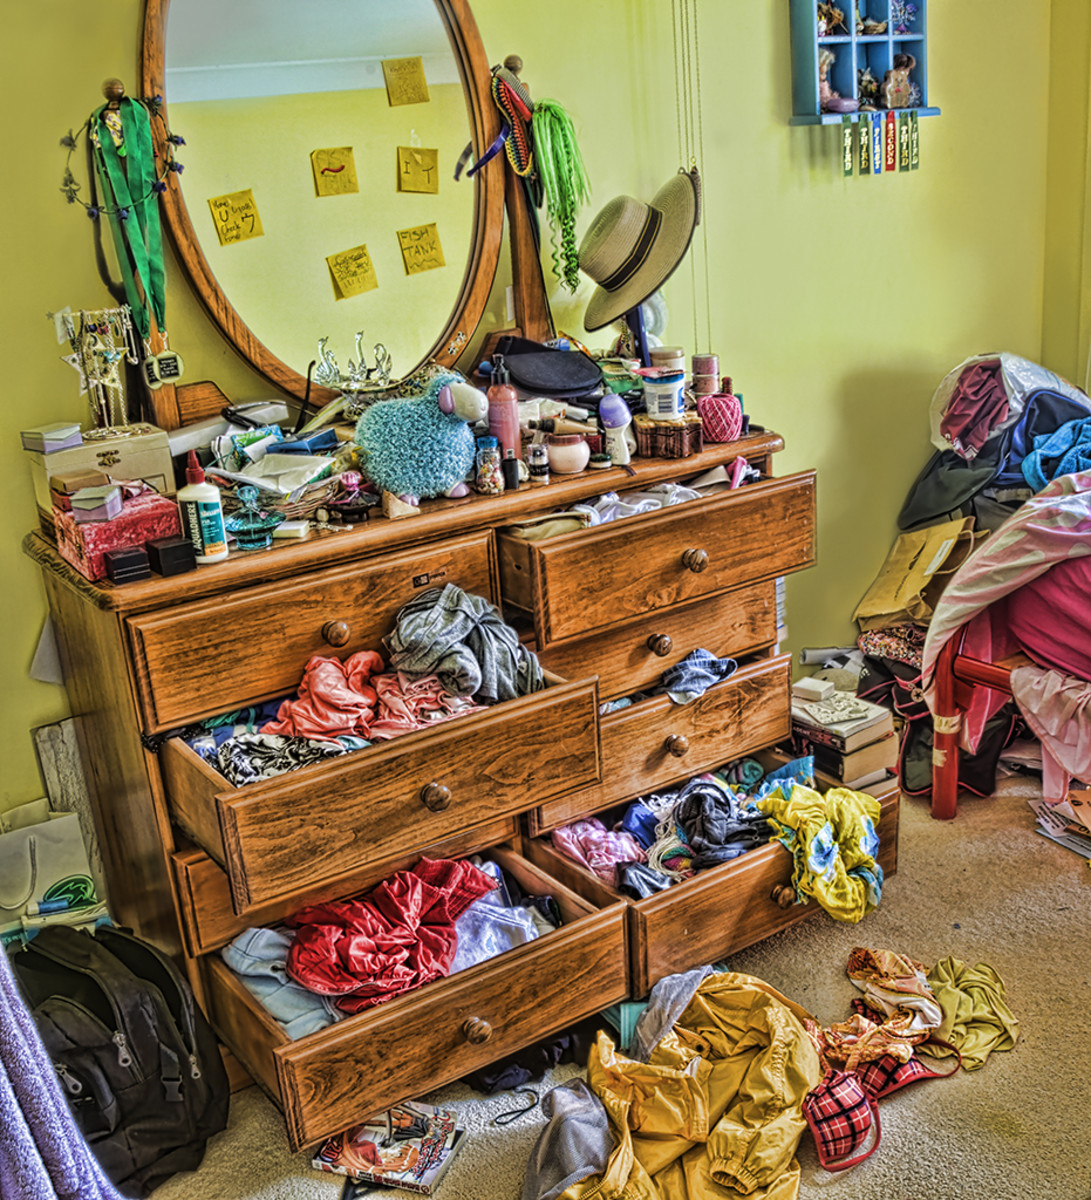 Messy Walls But I Like It: How To Clean A Messy Room Quickly